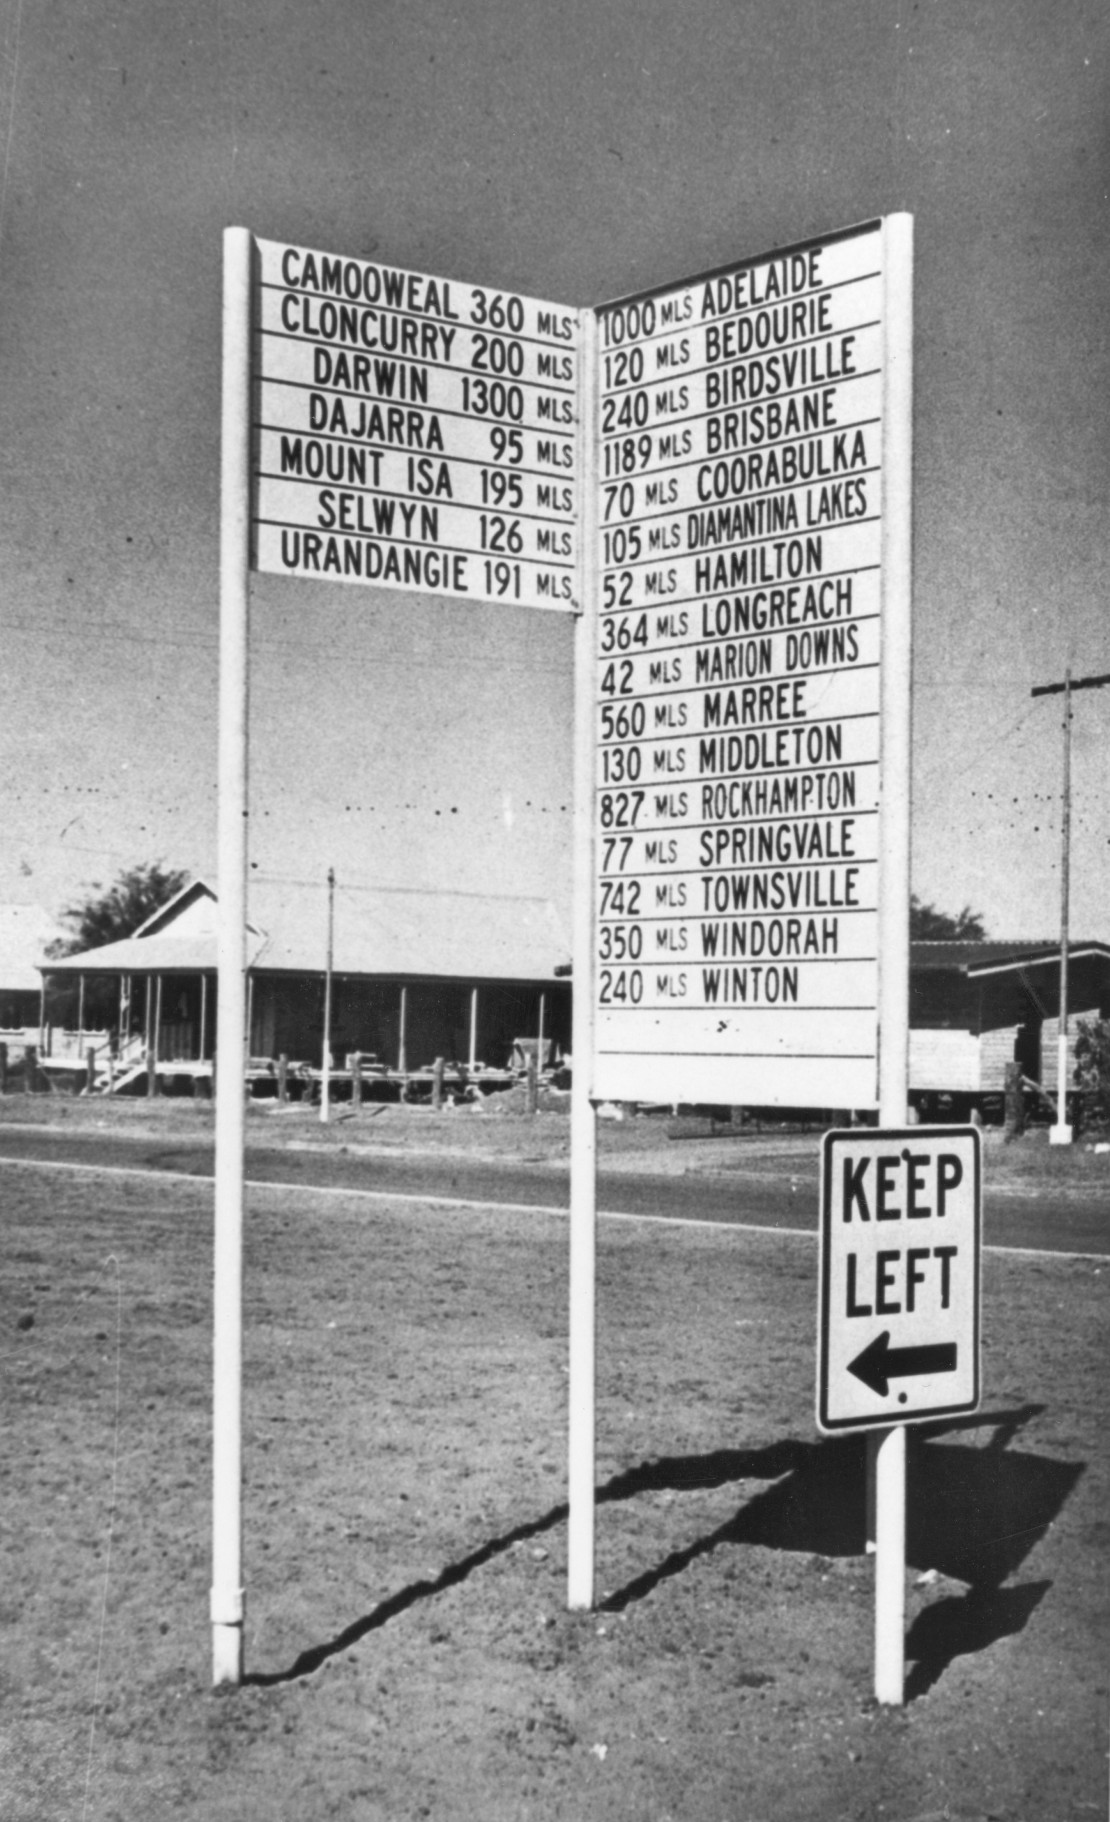 Road sign showing the distance to other locations from Boulia